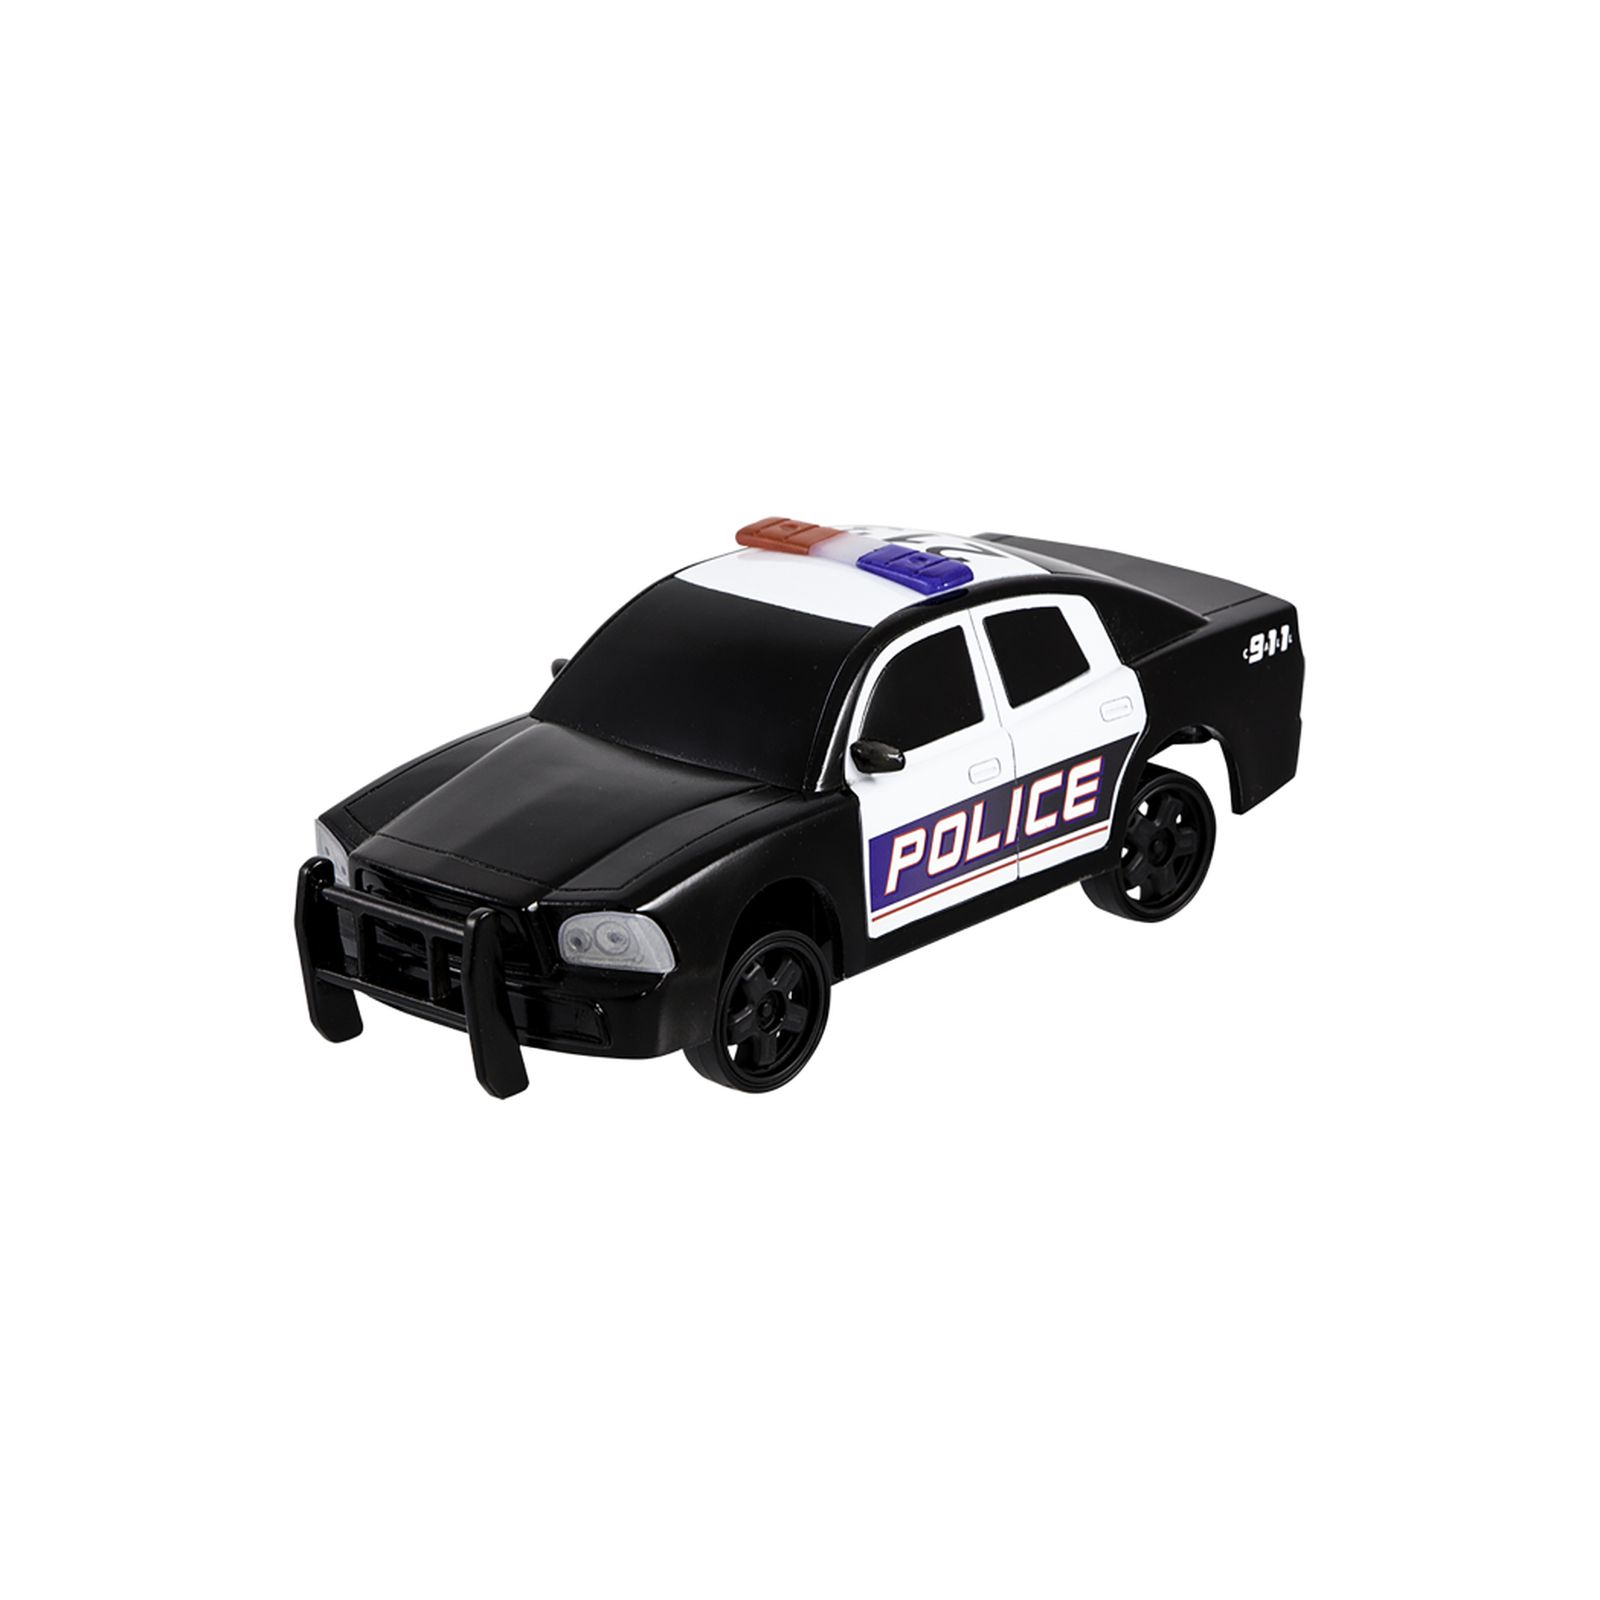 Auto r/c  drifting and police car 2 in 1 - SHARPER IMAGES